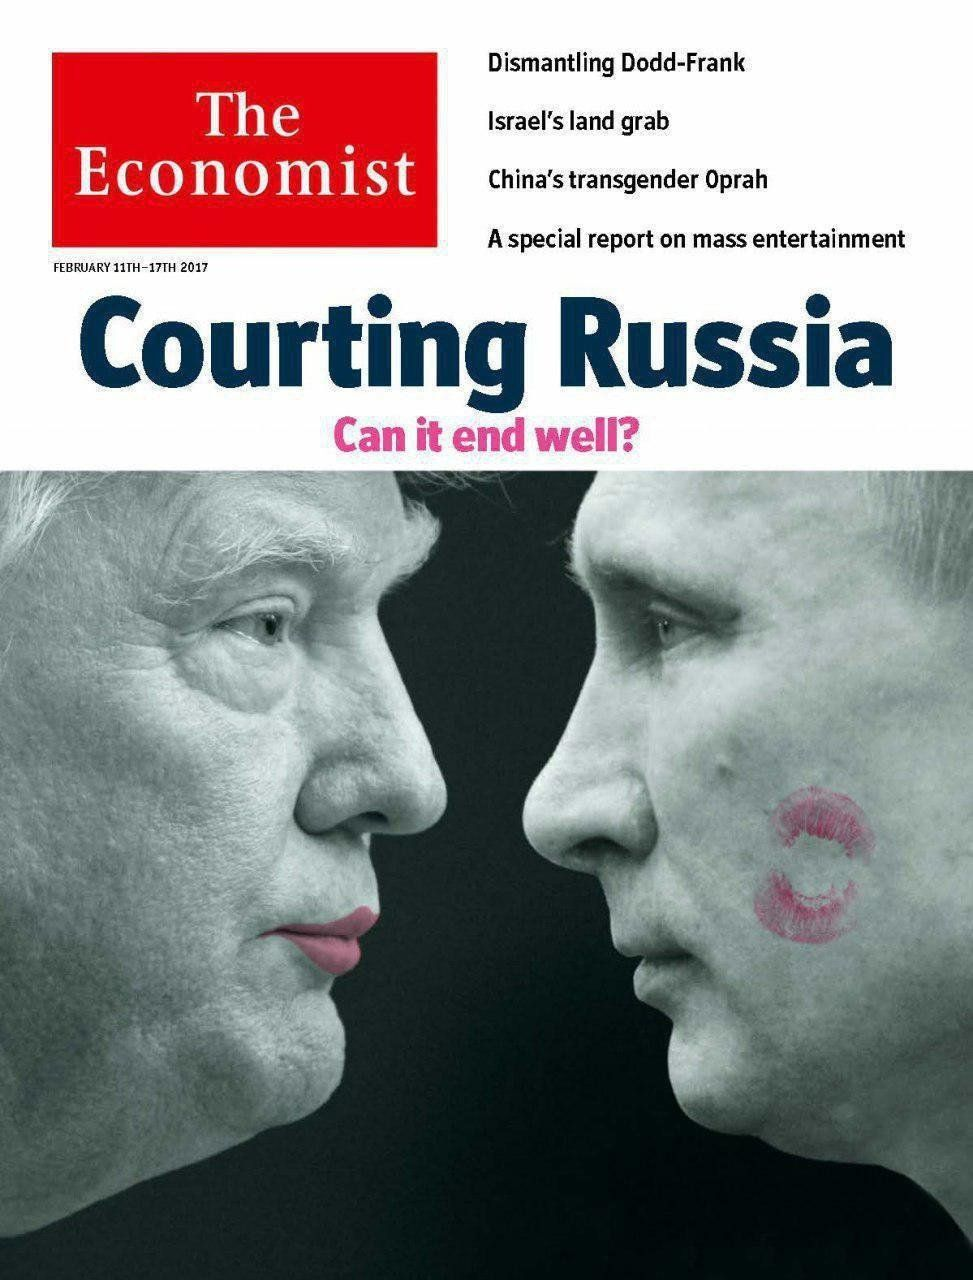 A lipstick-wearing Donald Trump puckers up to Vladimir Putin on the cover of The Economist.